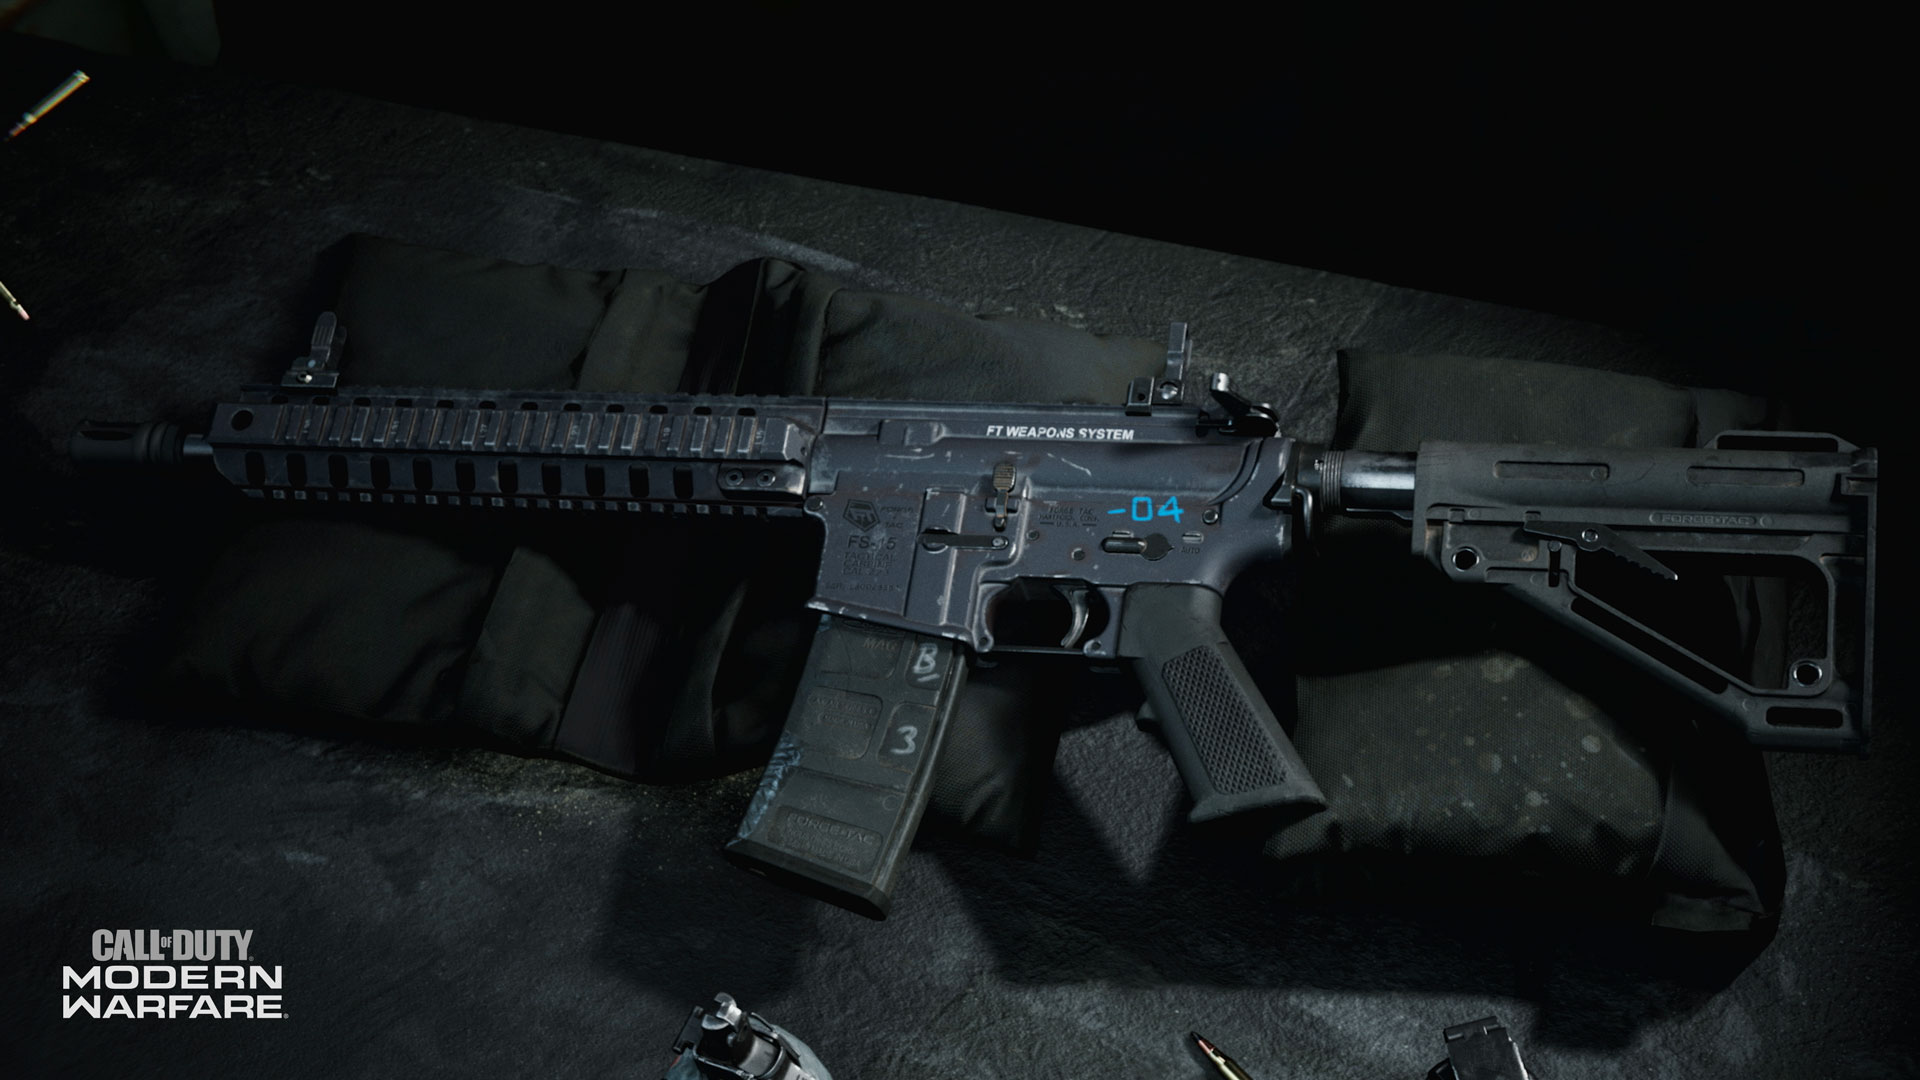 Call of Duty: Modern Warfare Weapons List, Stats, Gunsmith and Complete Gun Guide! 3